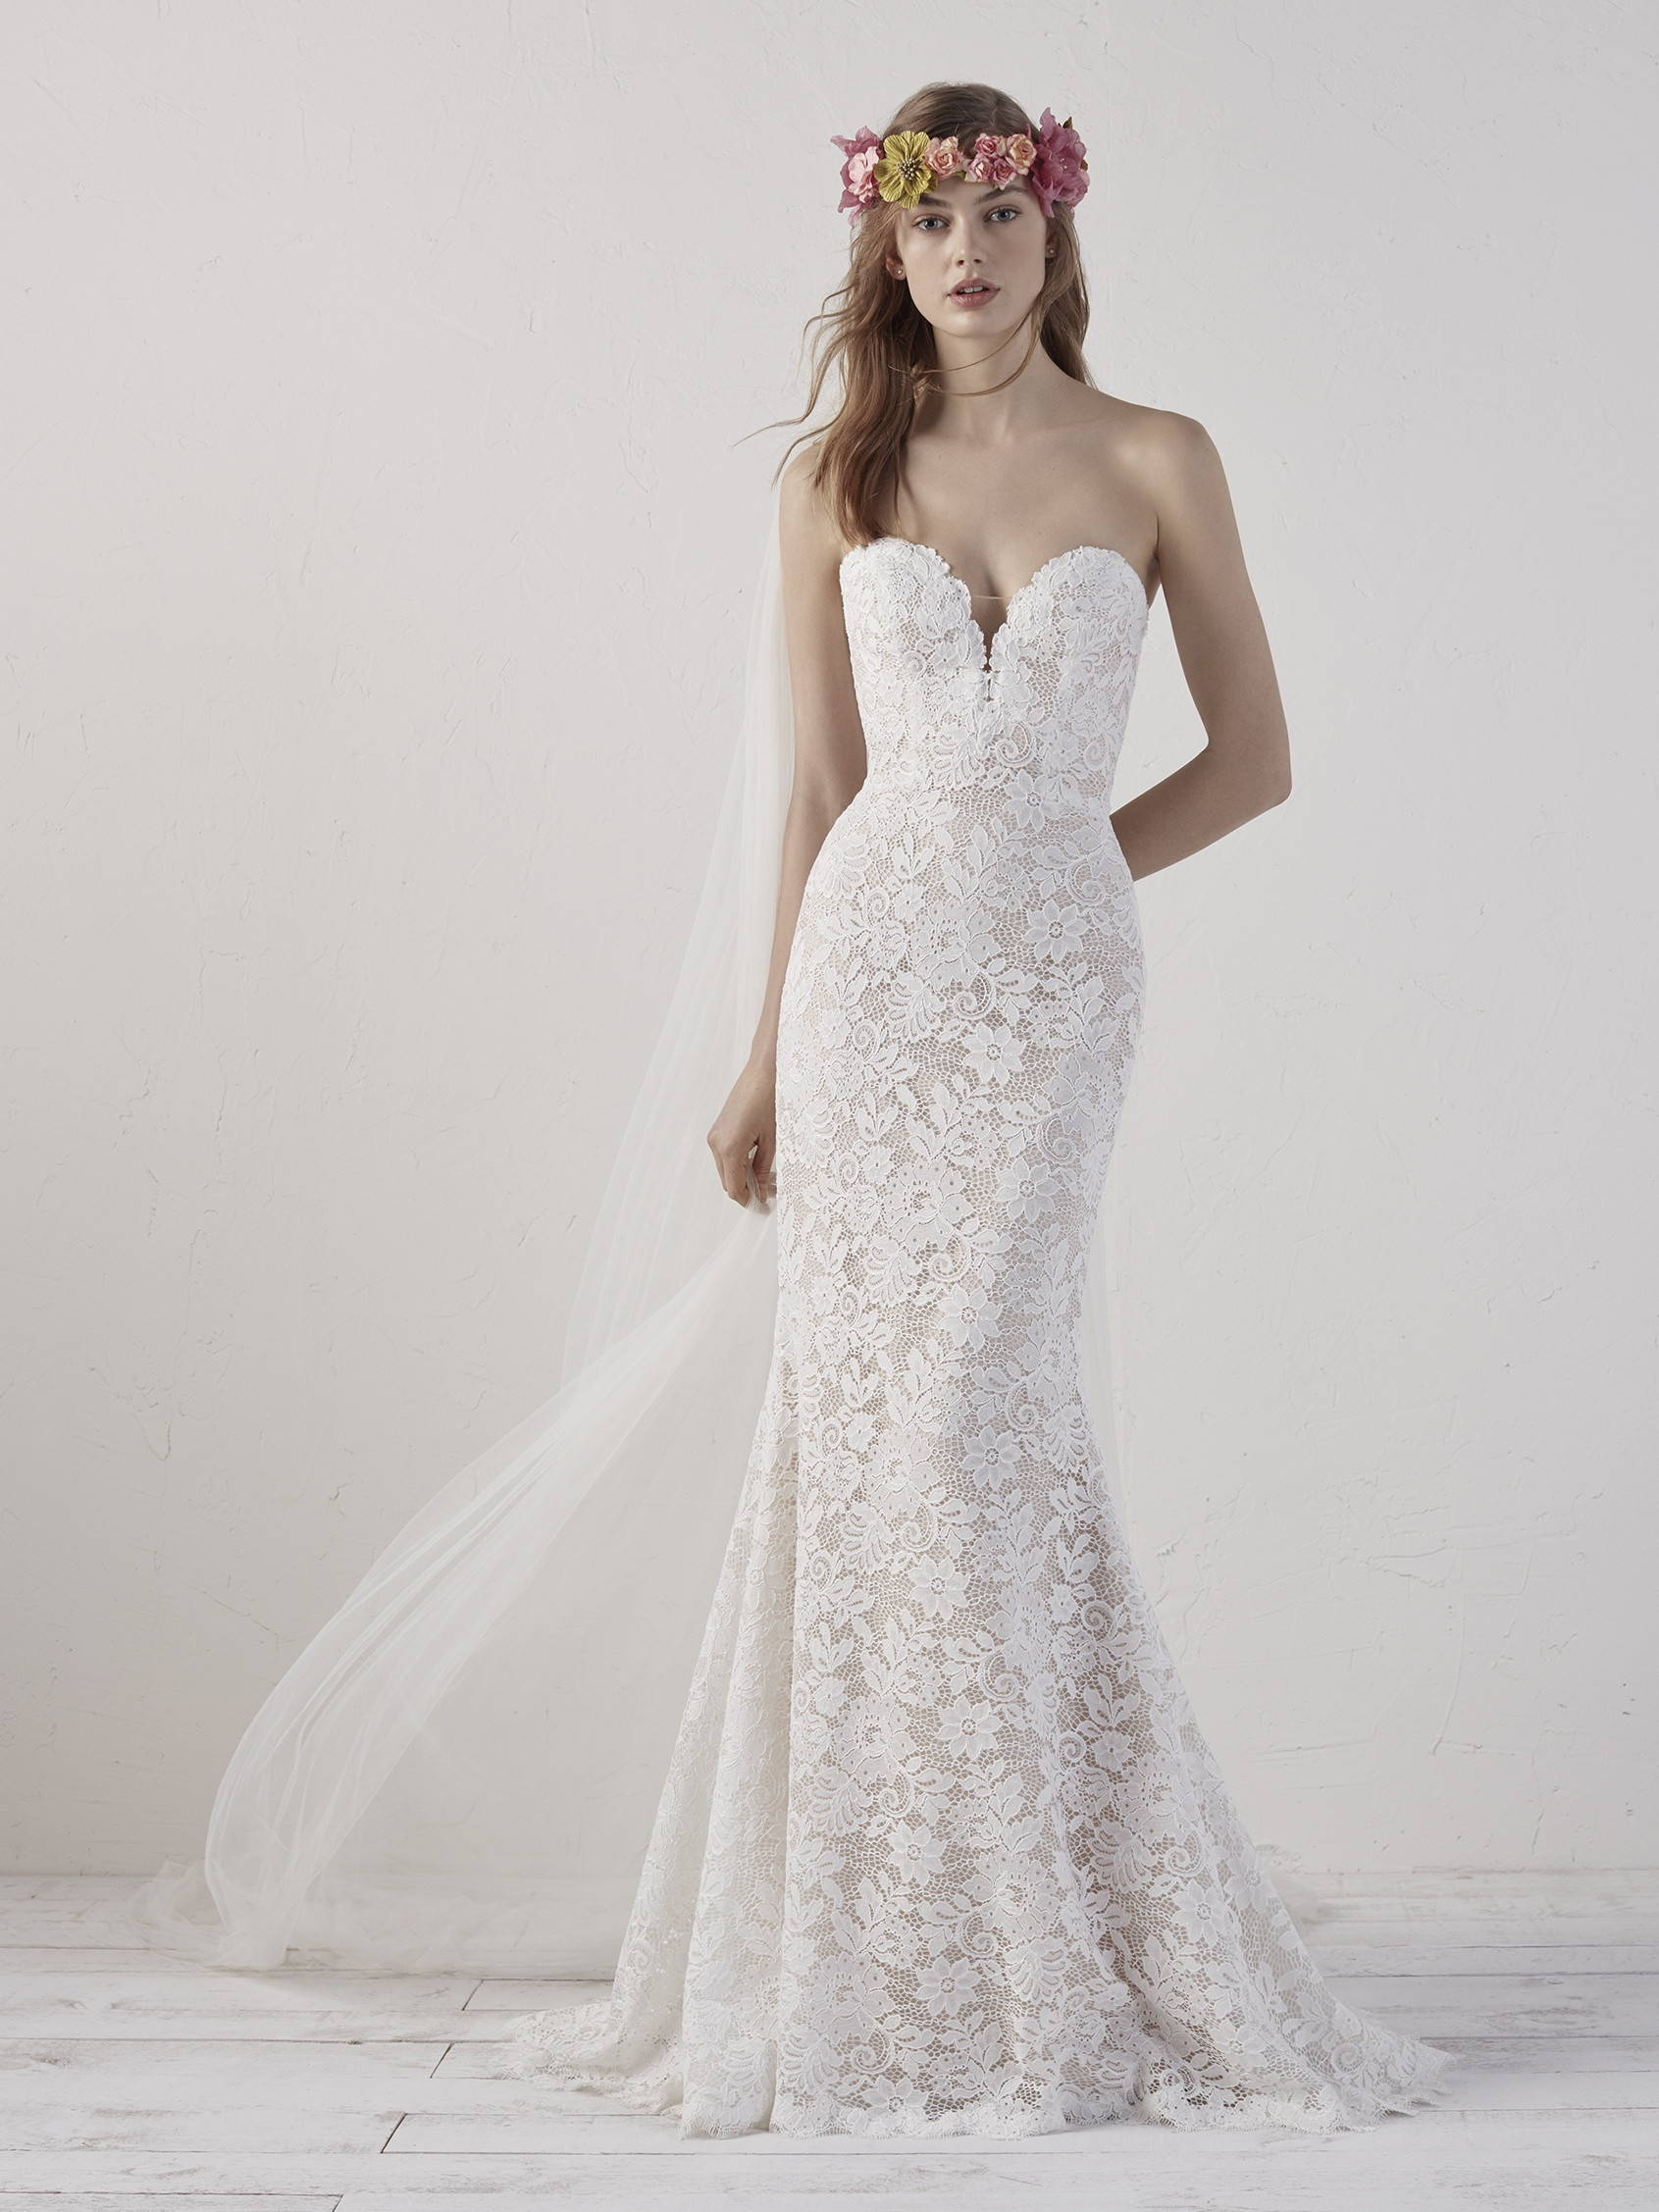 PRONOVIAS EITHEL WEDDING DRESS